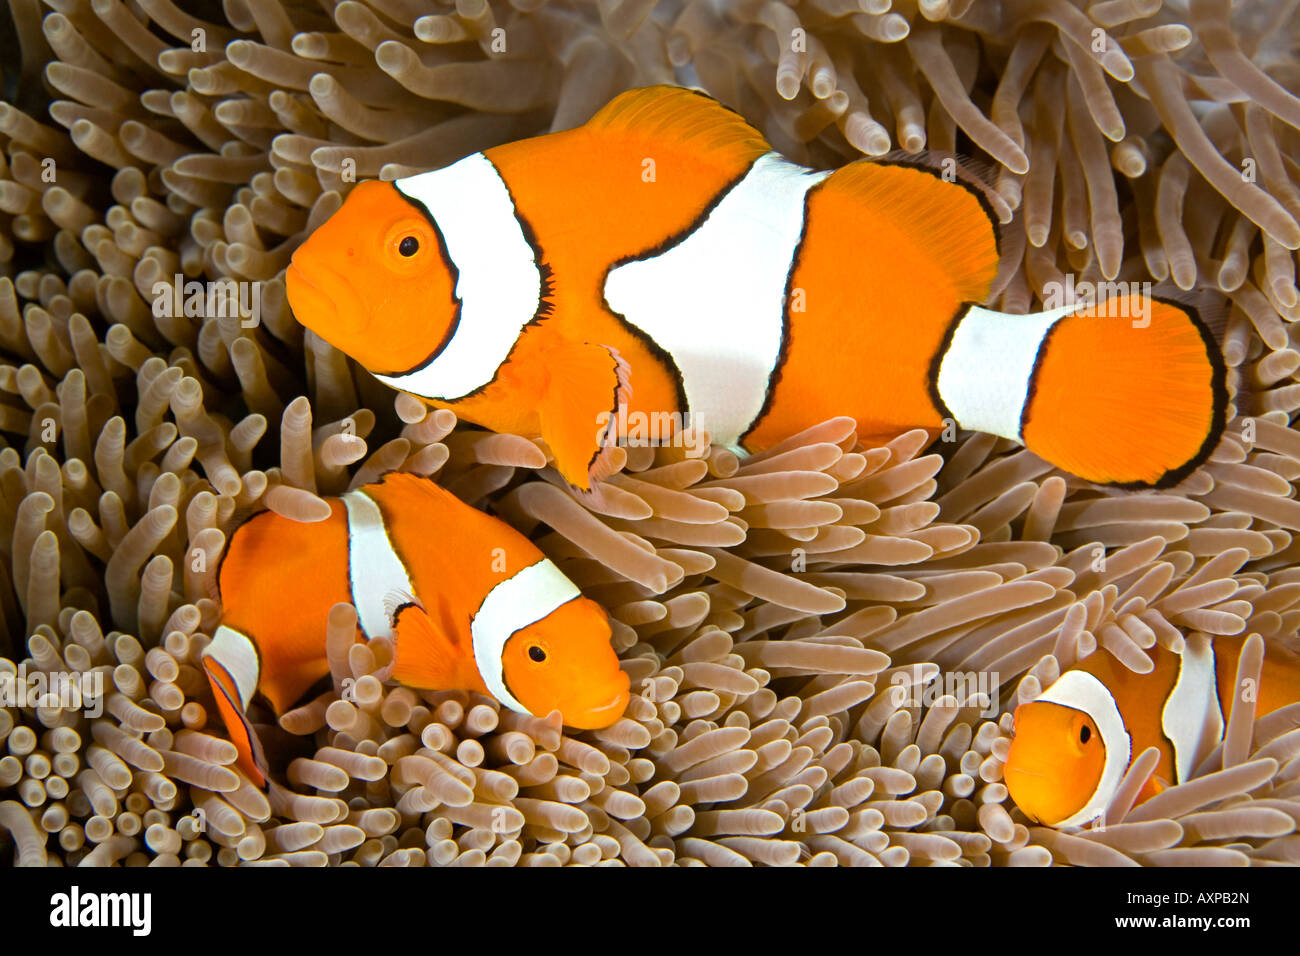 a-family-of-three-clown-anemonefish-amphiprion-percula-living-in-a-AXPB2N.jpg